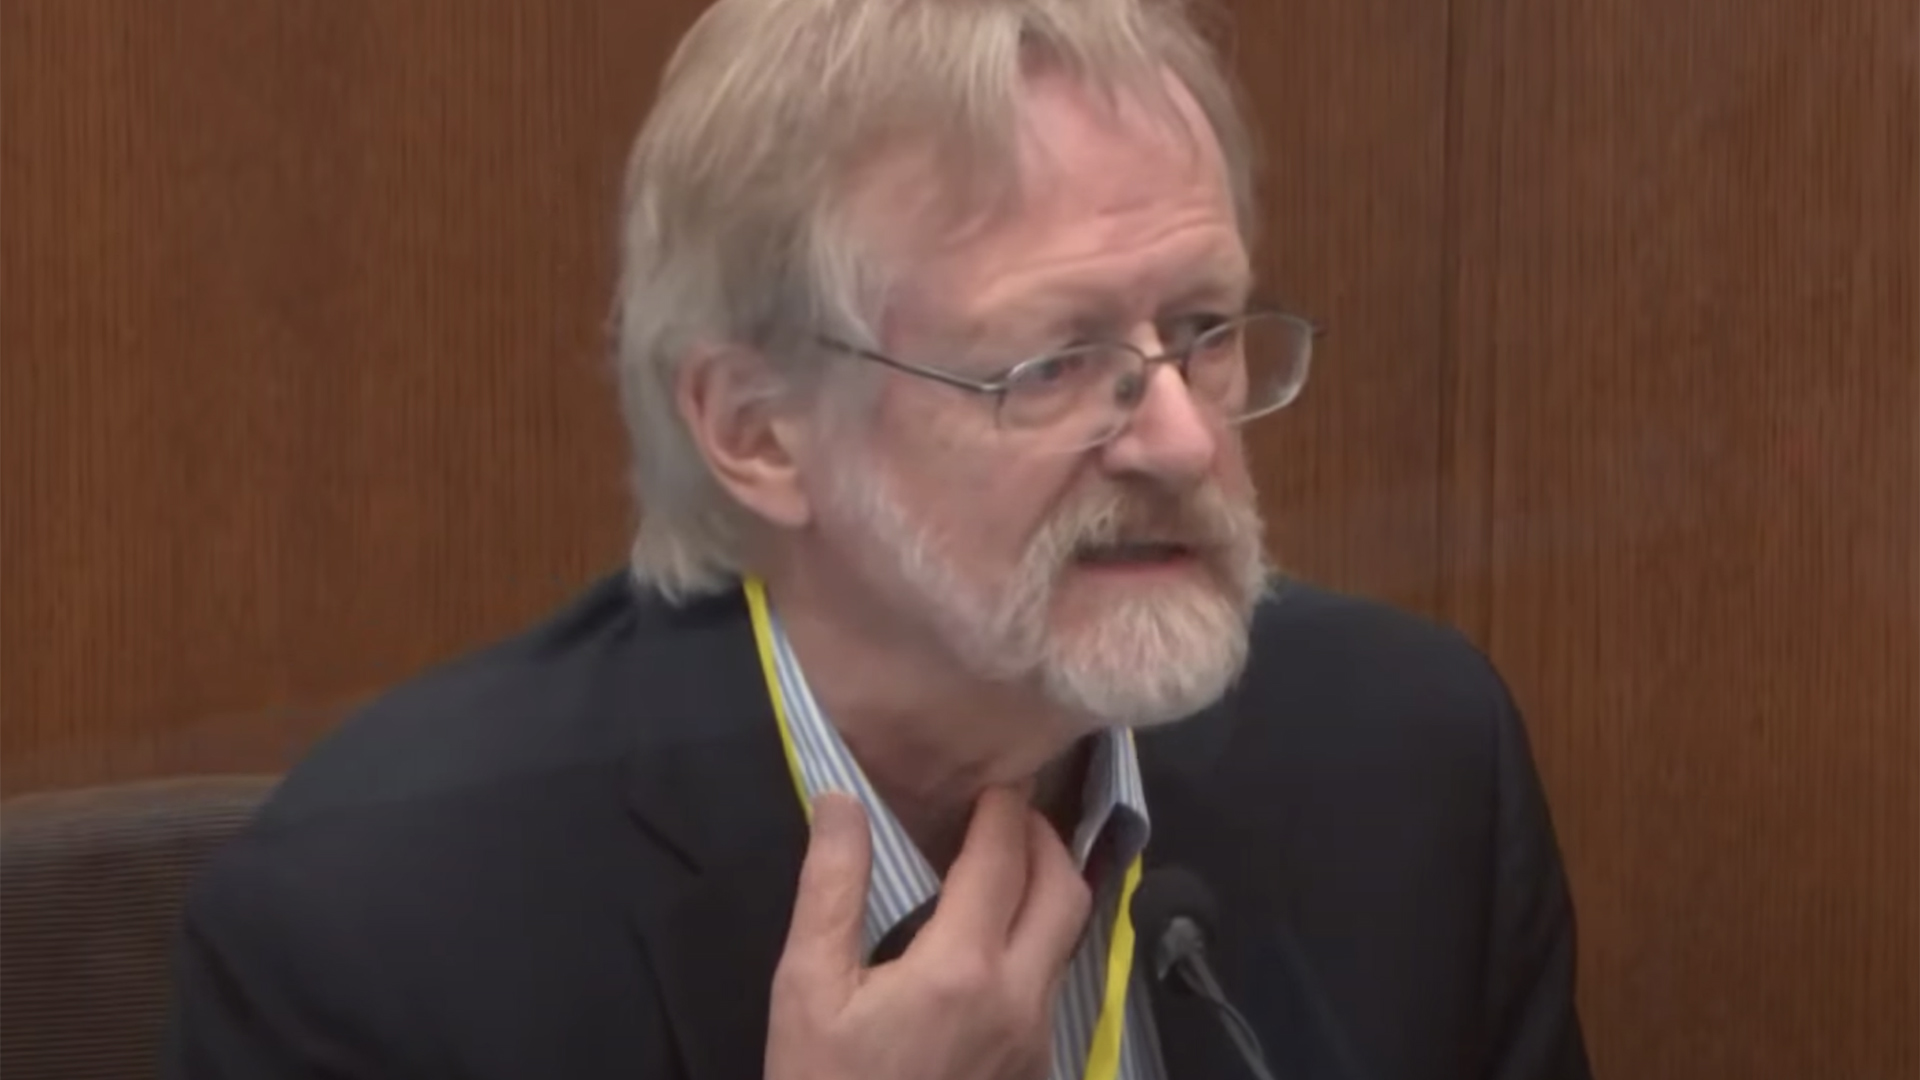 Breathing expert: Floyd died from lack of oxygen under Chauvin